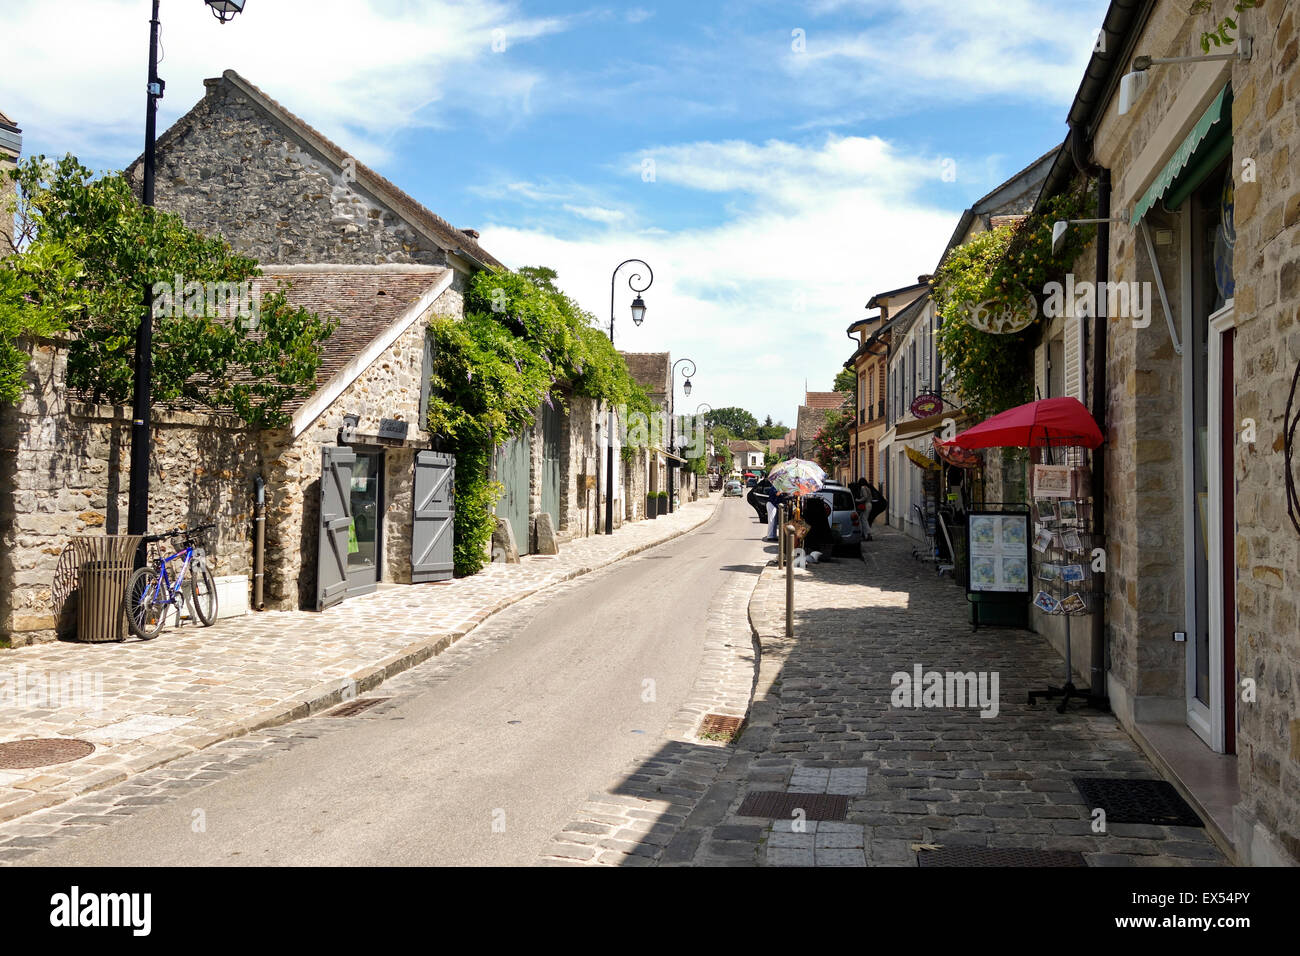 Picturesque street view in French Artists Village  Barbizon, Seine-et-Marne, France. - Stock Image